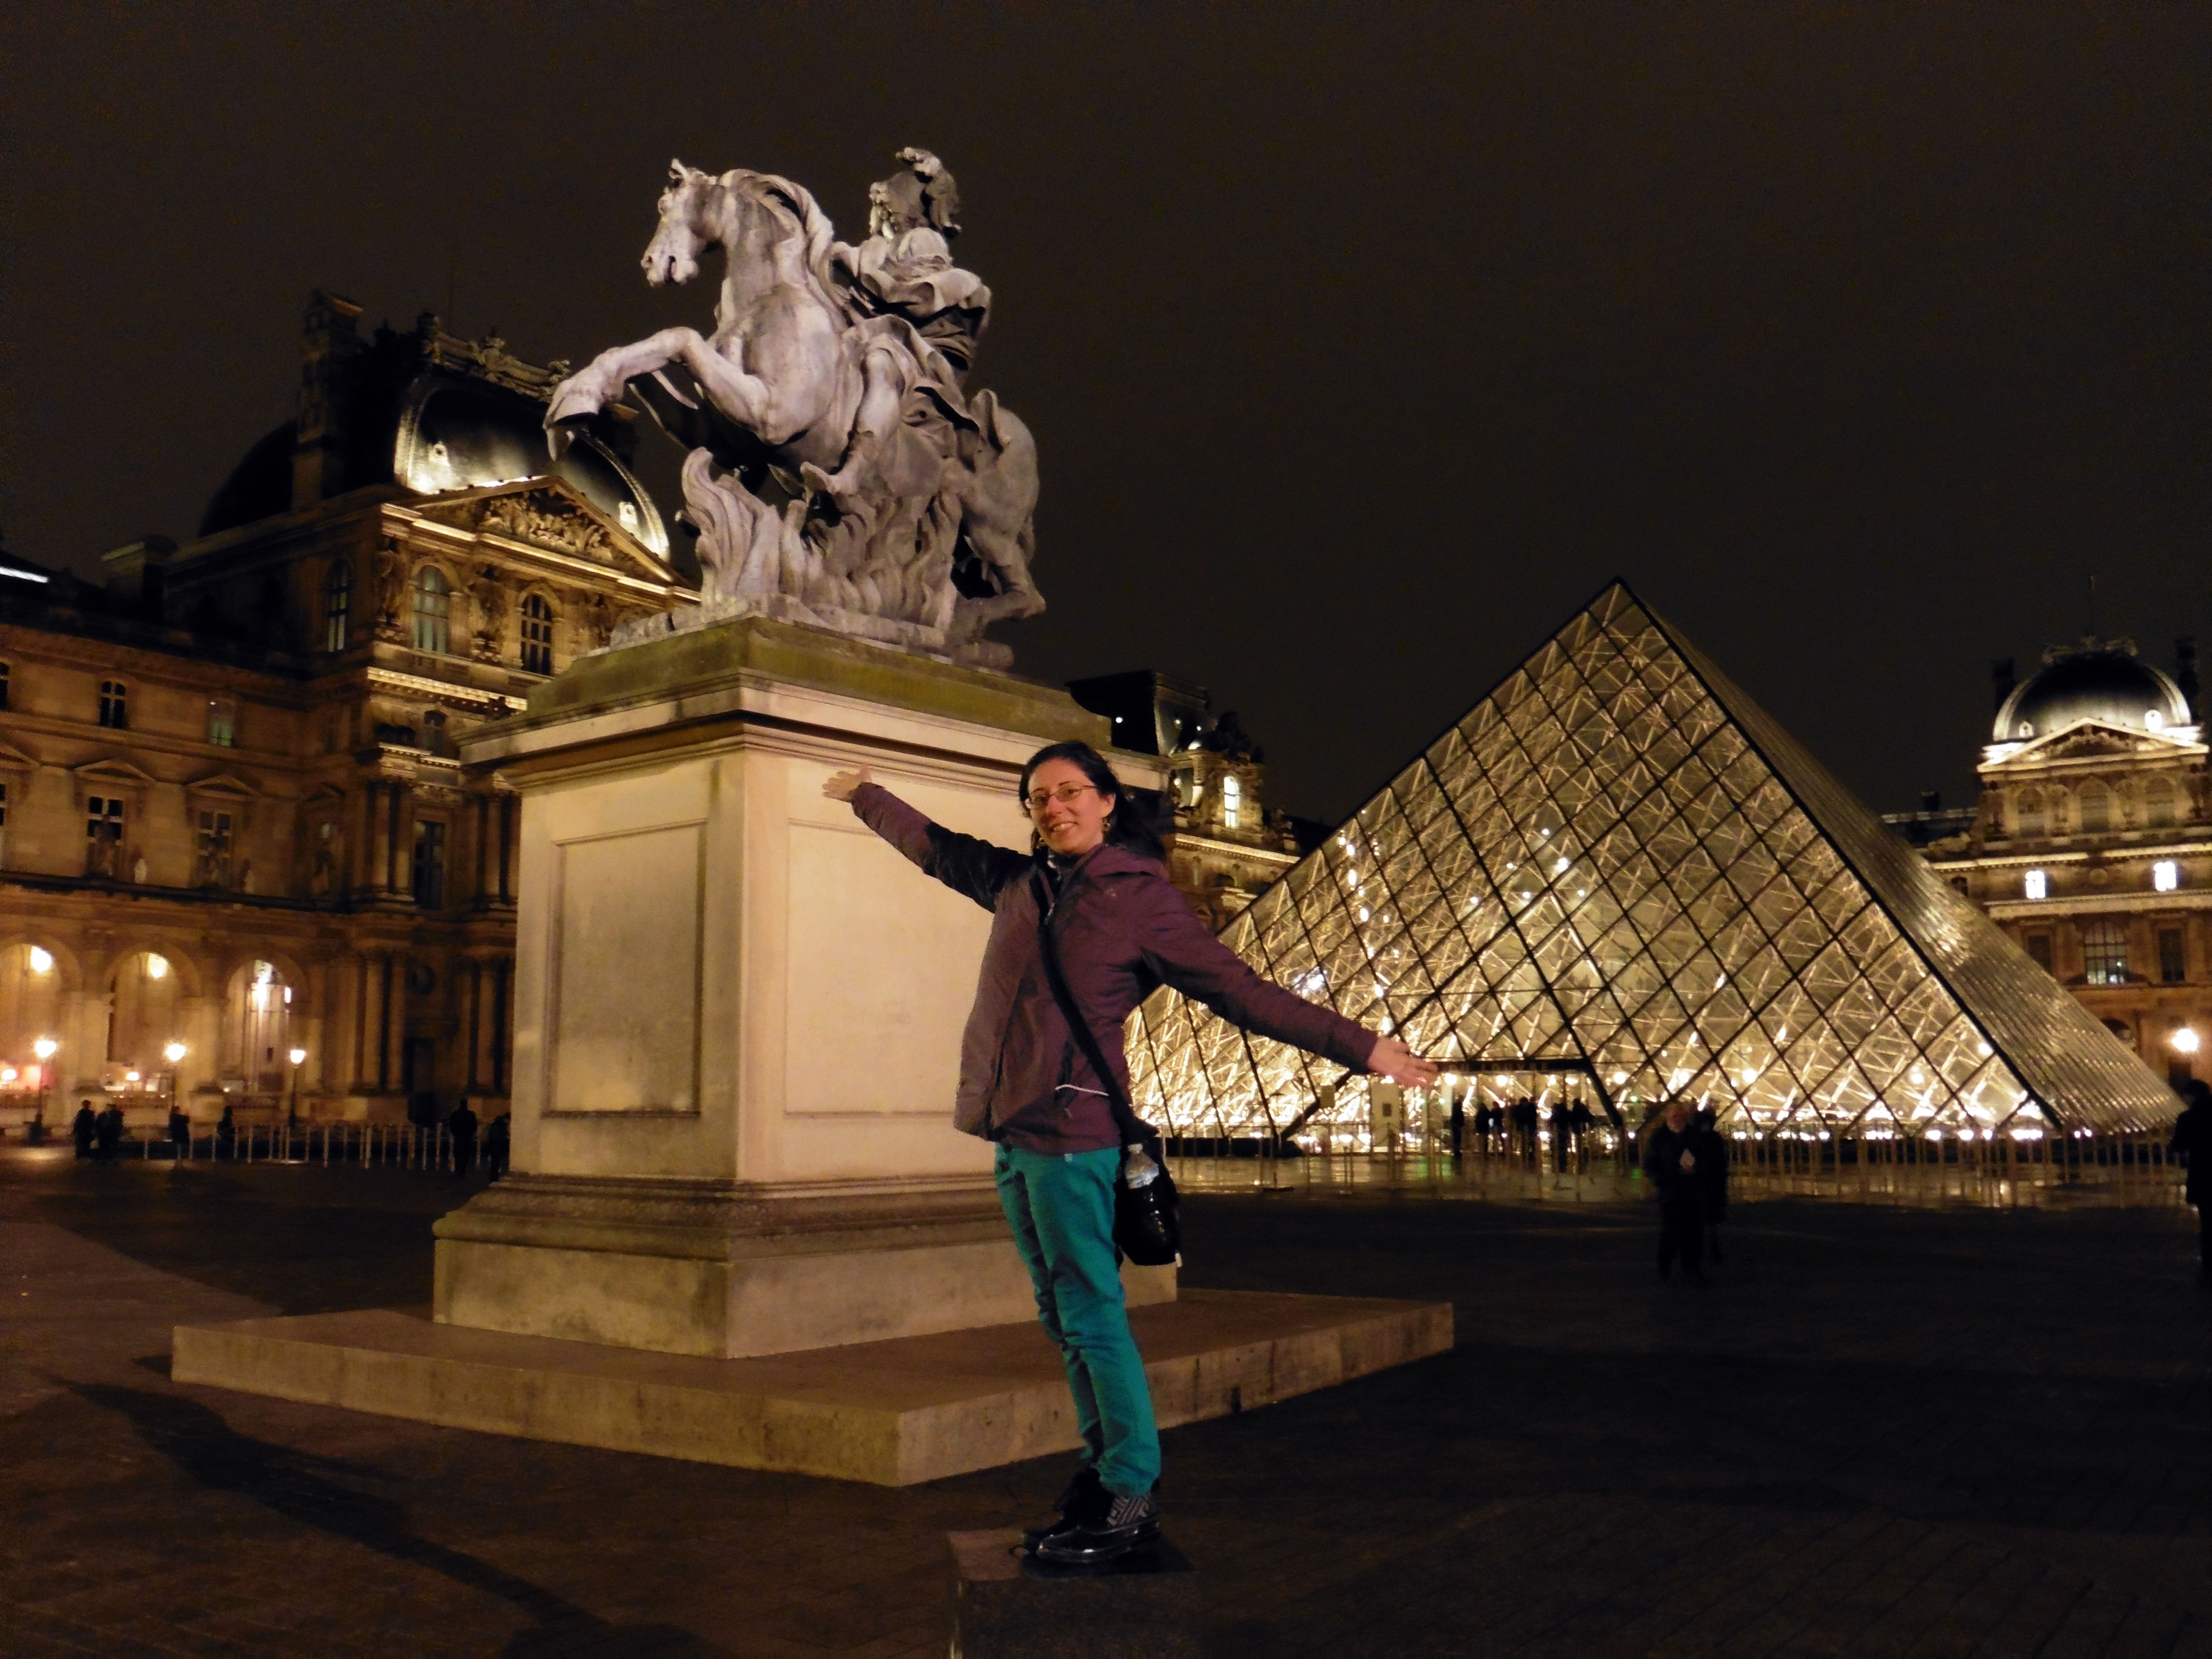 The Louvre pyramid at night in Paris, France